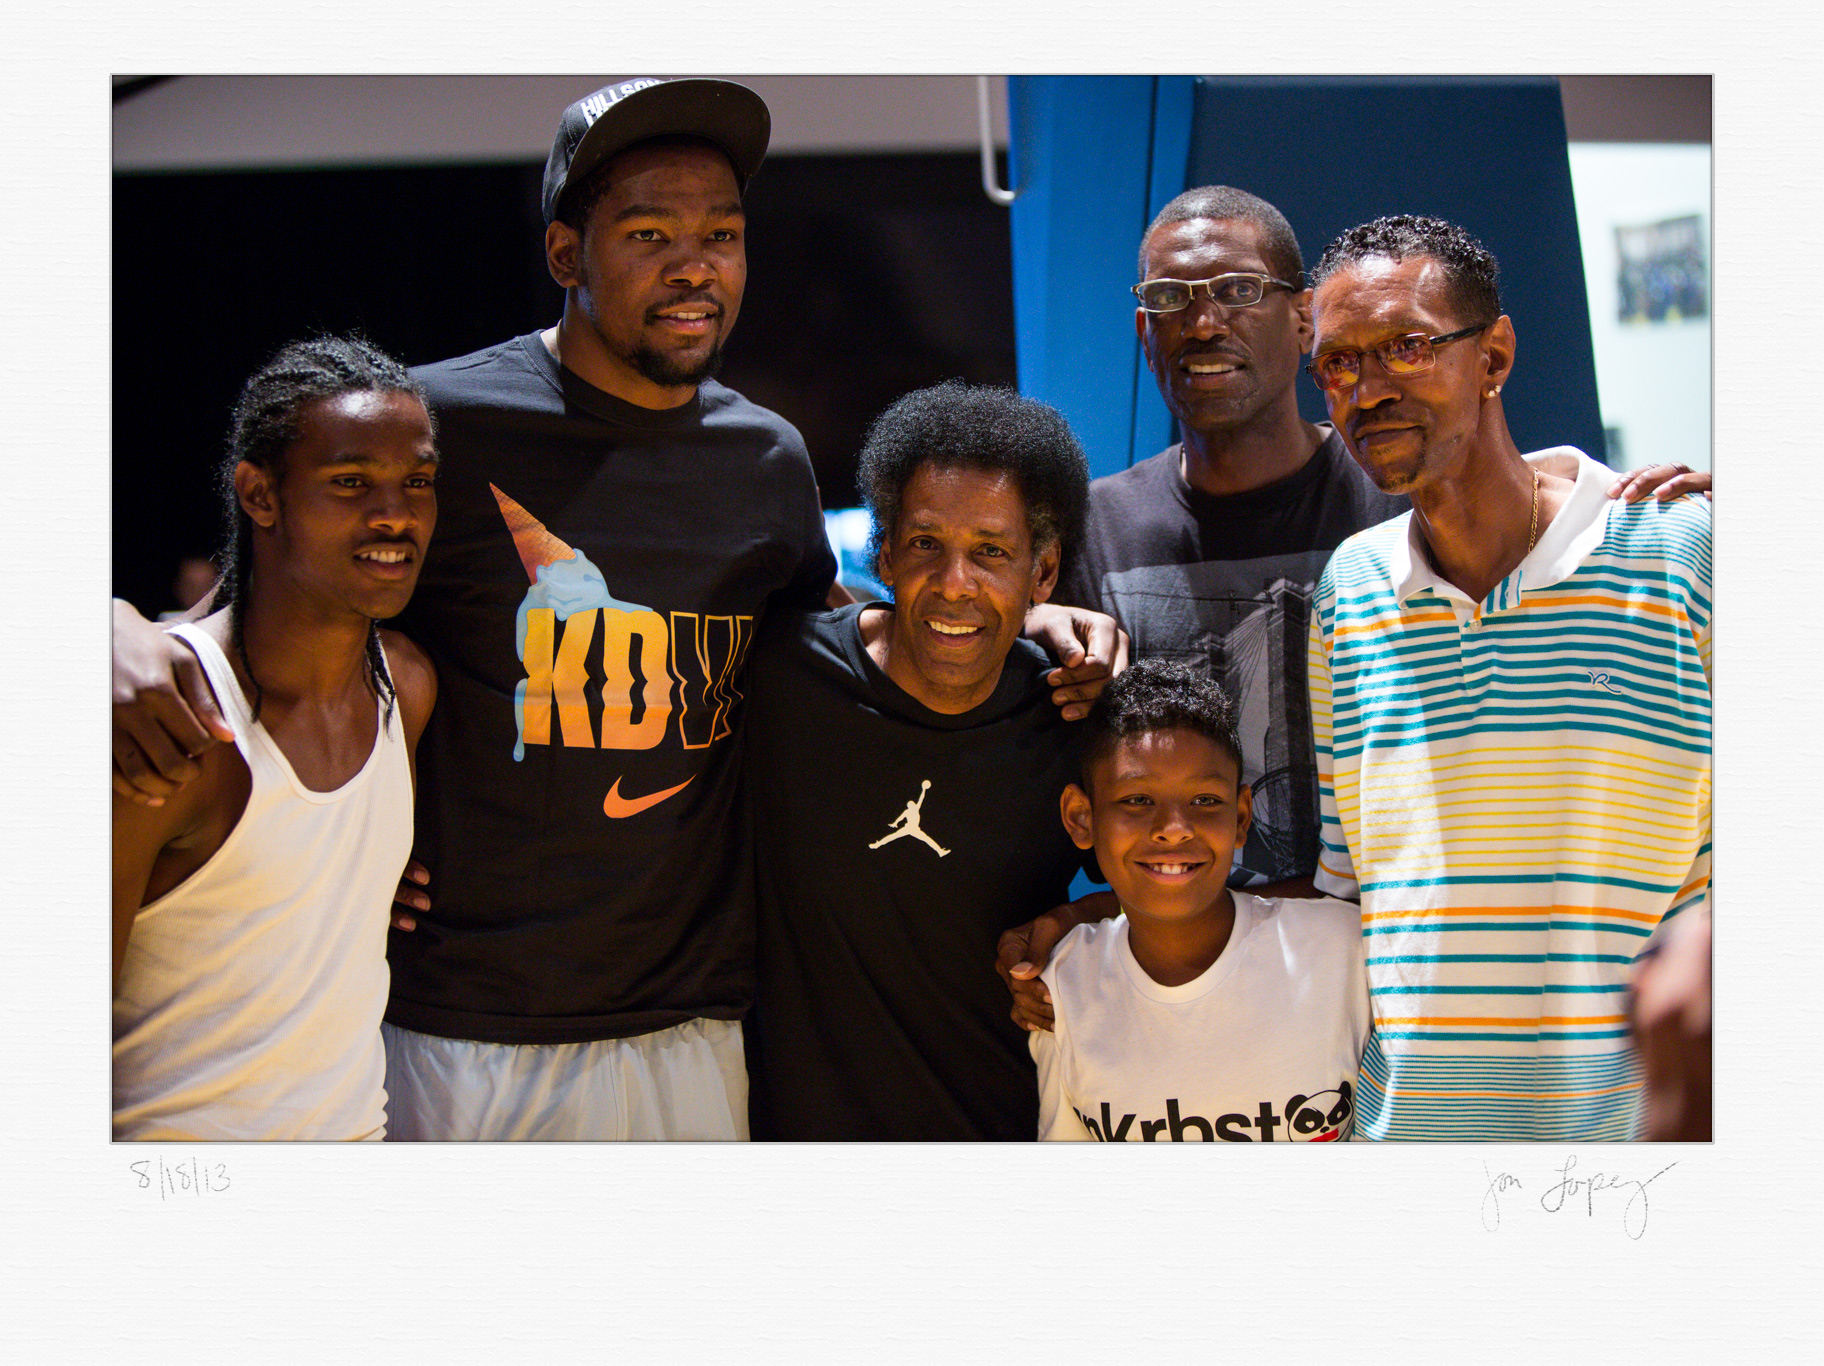 """Kevin Durant was highly sought after for photos and autographs and he obliged most of the requests including this one with playground legends Pee Wee Kirkland (center with Jordan shirt) and James """"Fly"""" Williams (far right)."""